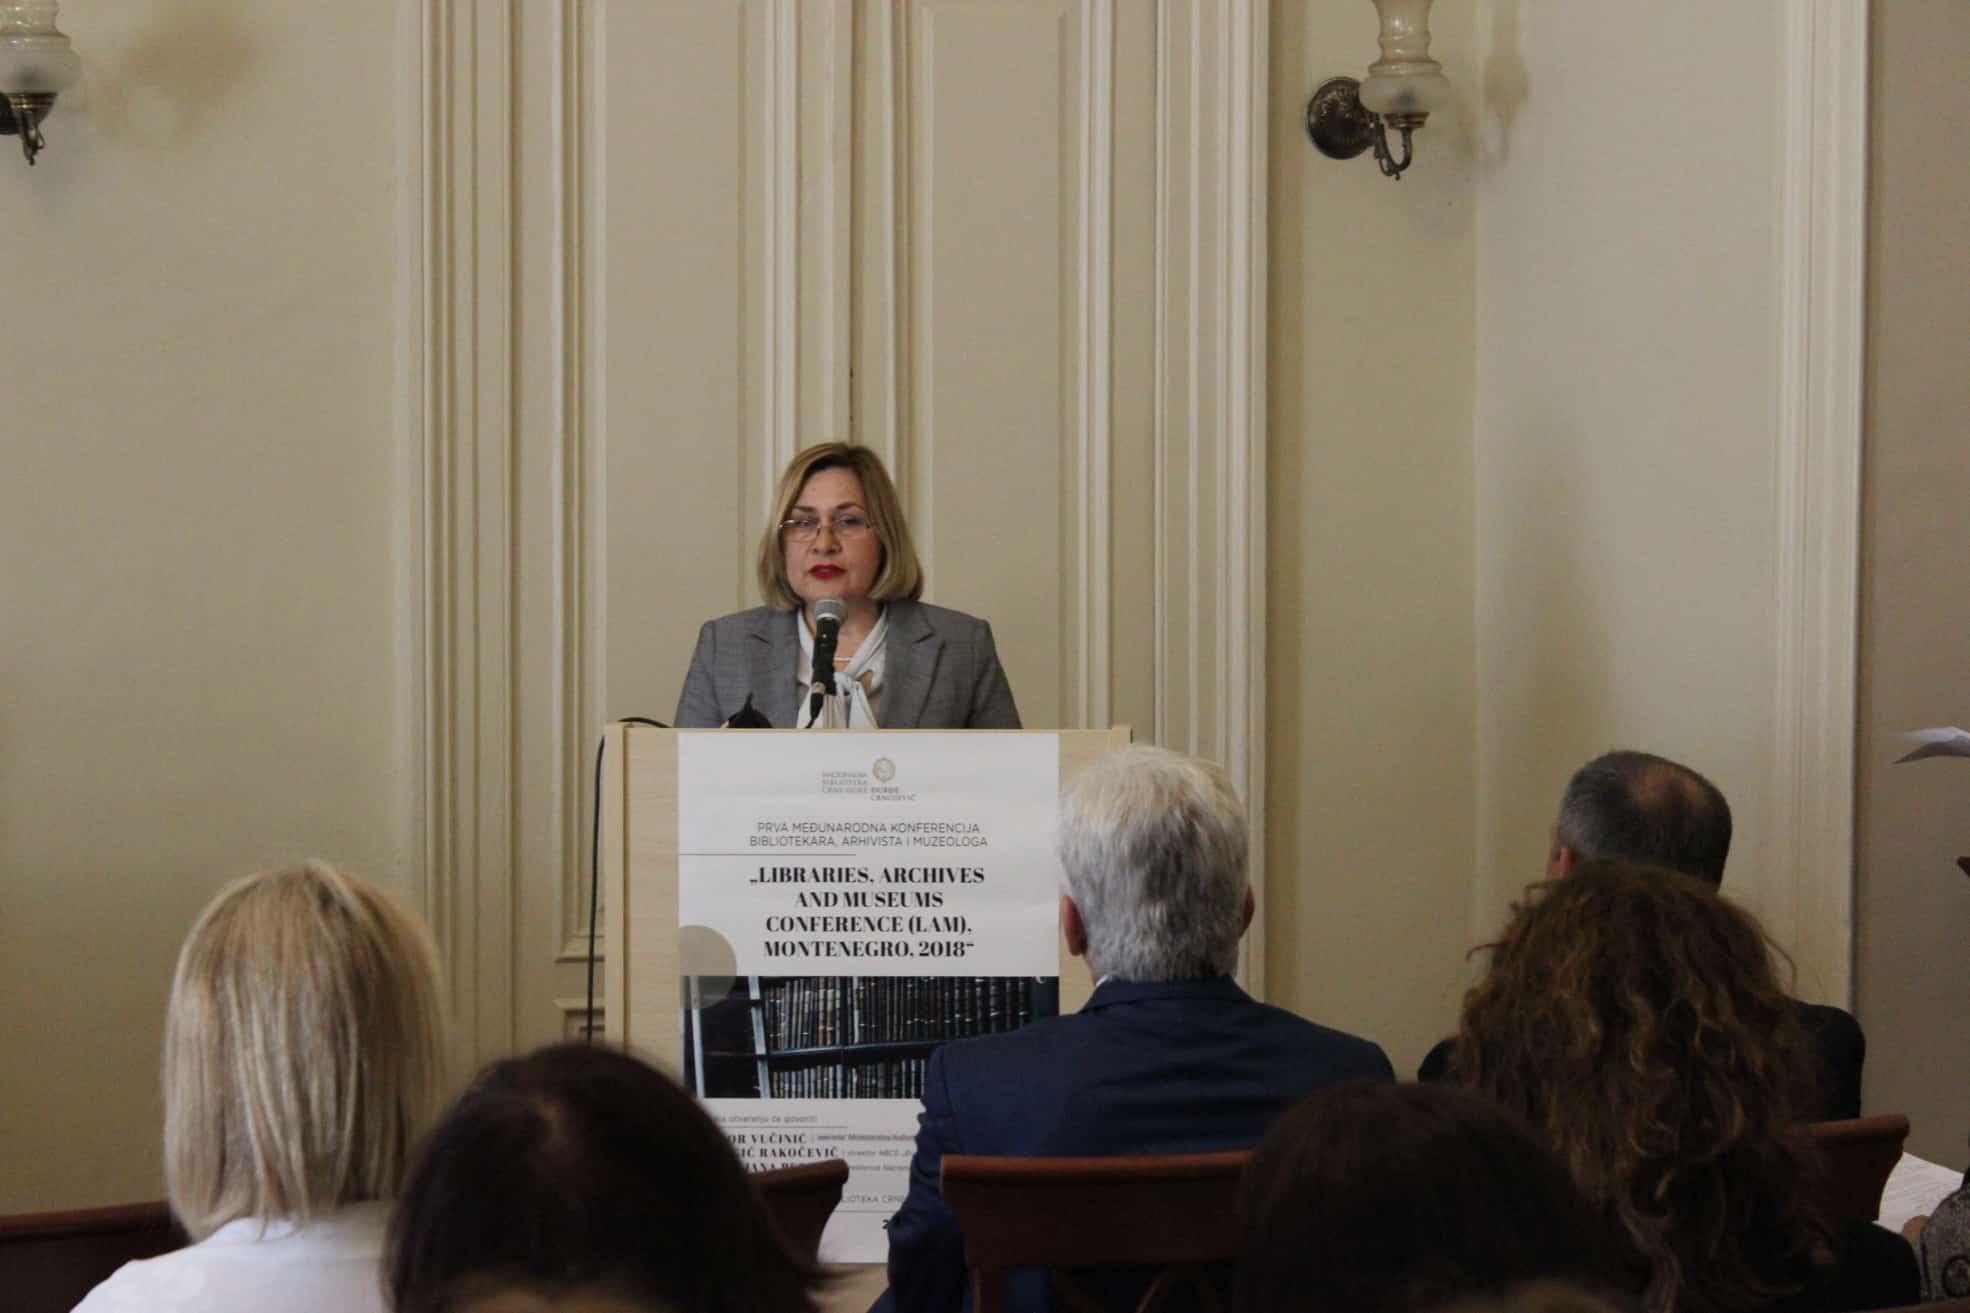 "Glavna ravnateljica Nacionalne i sveučilišne knjižnice u Zagrebu dr. sc. Tatijana Petrić na 1. međunarodnoj konferenciji knjižničara, arhivista i muzeologa ""Libraries, Archives and Museums Conference (LAM), Montenegro, 2018""."